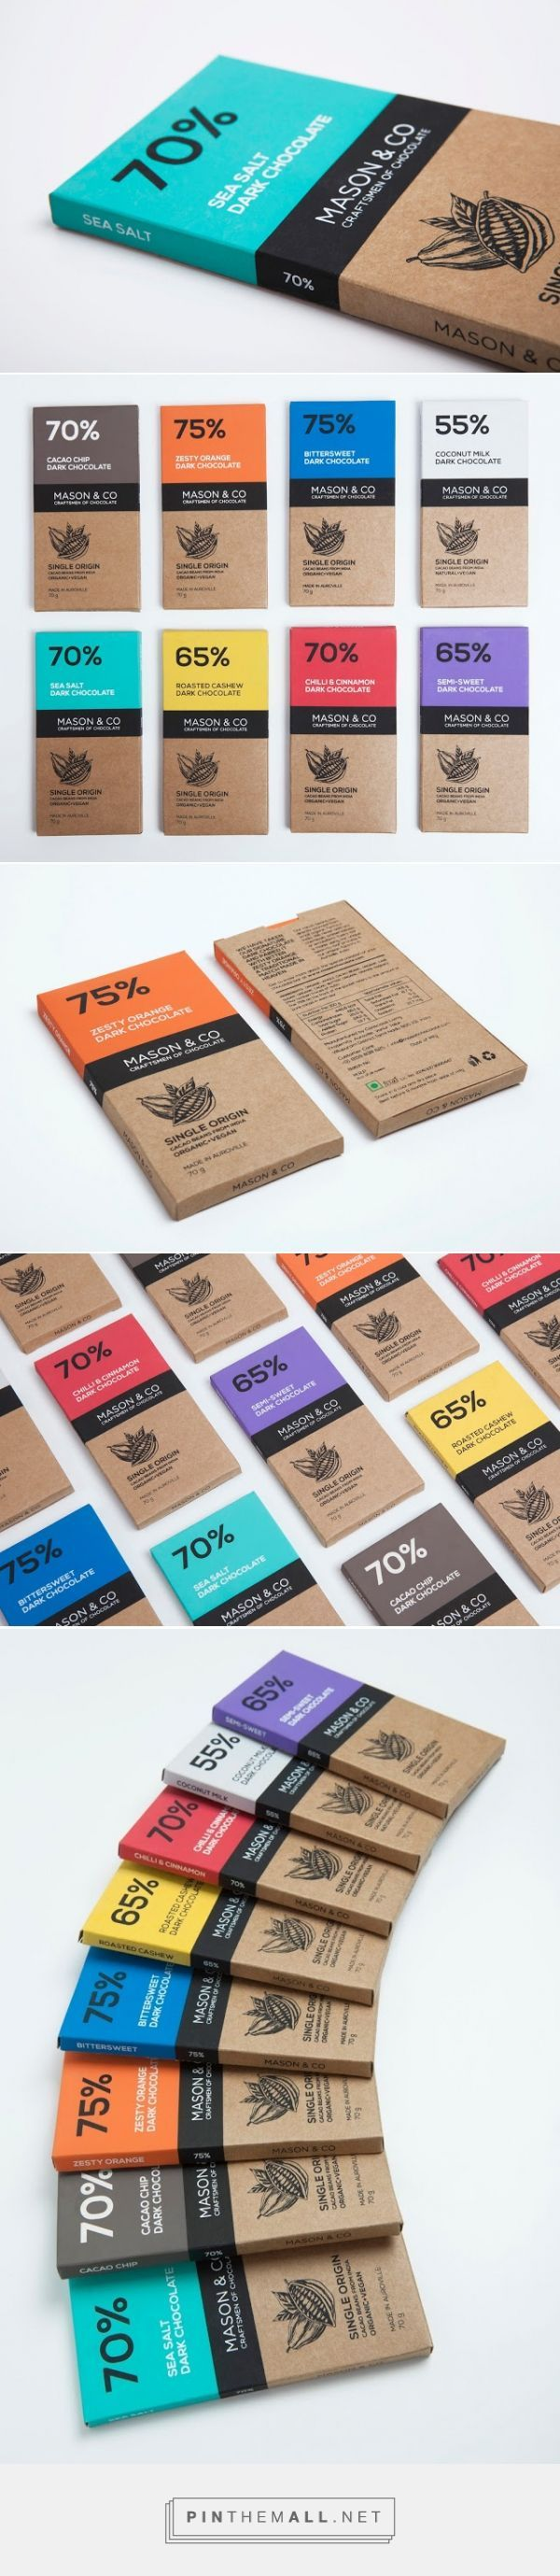 Great use of bold colors and type in this chocolate bar packaging by Mason & Co. #design